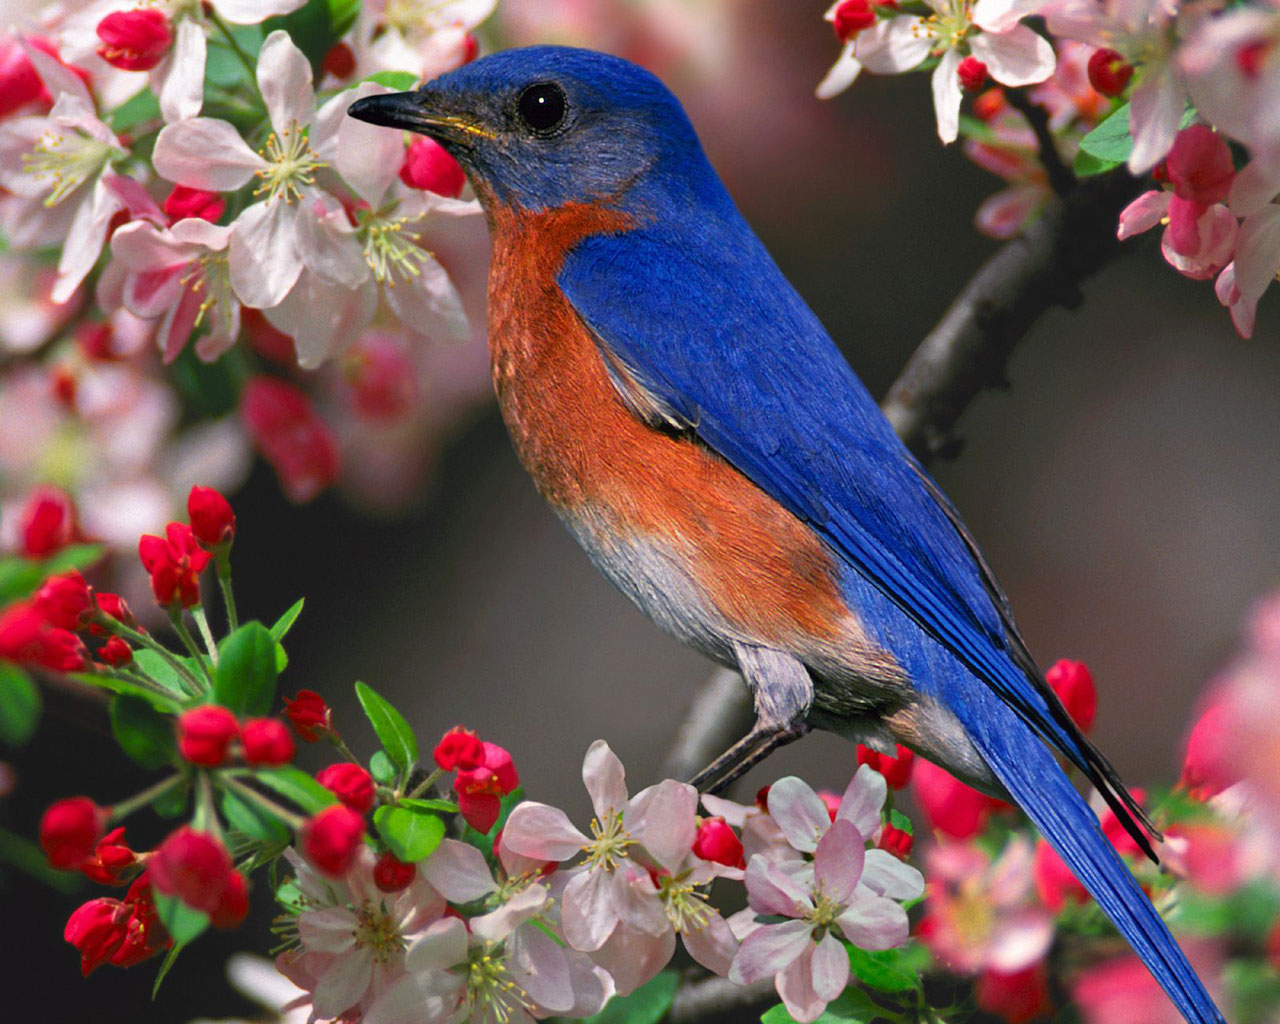 http://3.bp.blogspot.com/-an-WCO6sBNs/TmTRwlpXqgI/AAAAAAAAAjQ/CIkL7uGYCoI/s1600/Beautiful-Birds-Wallpapers-.jpg